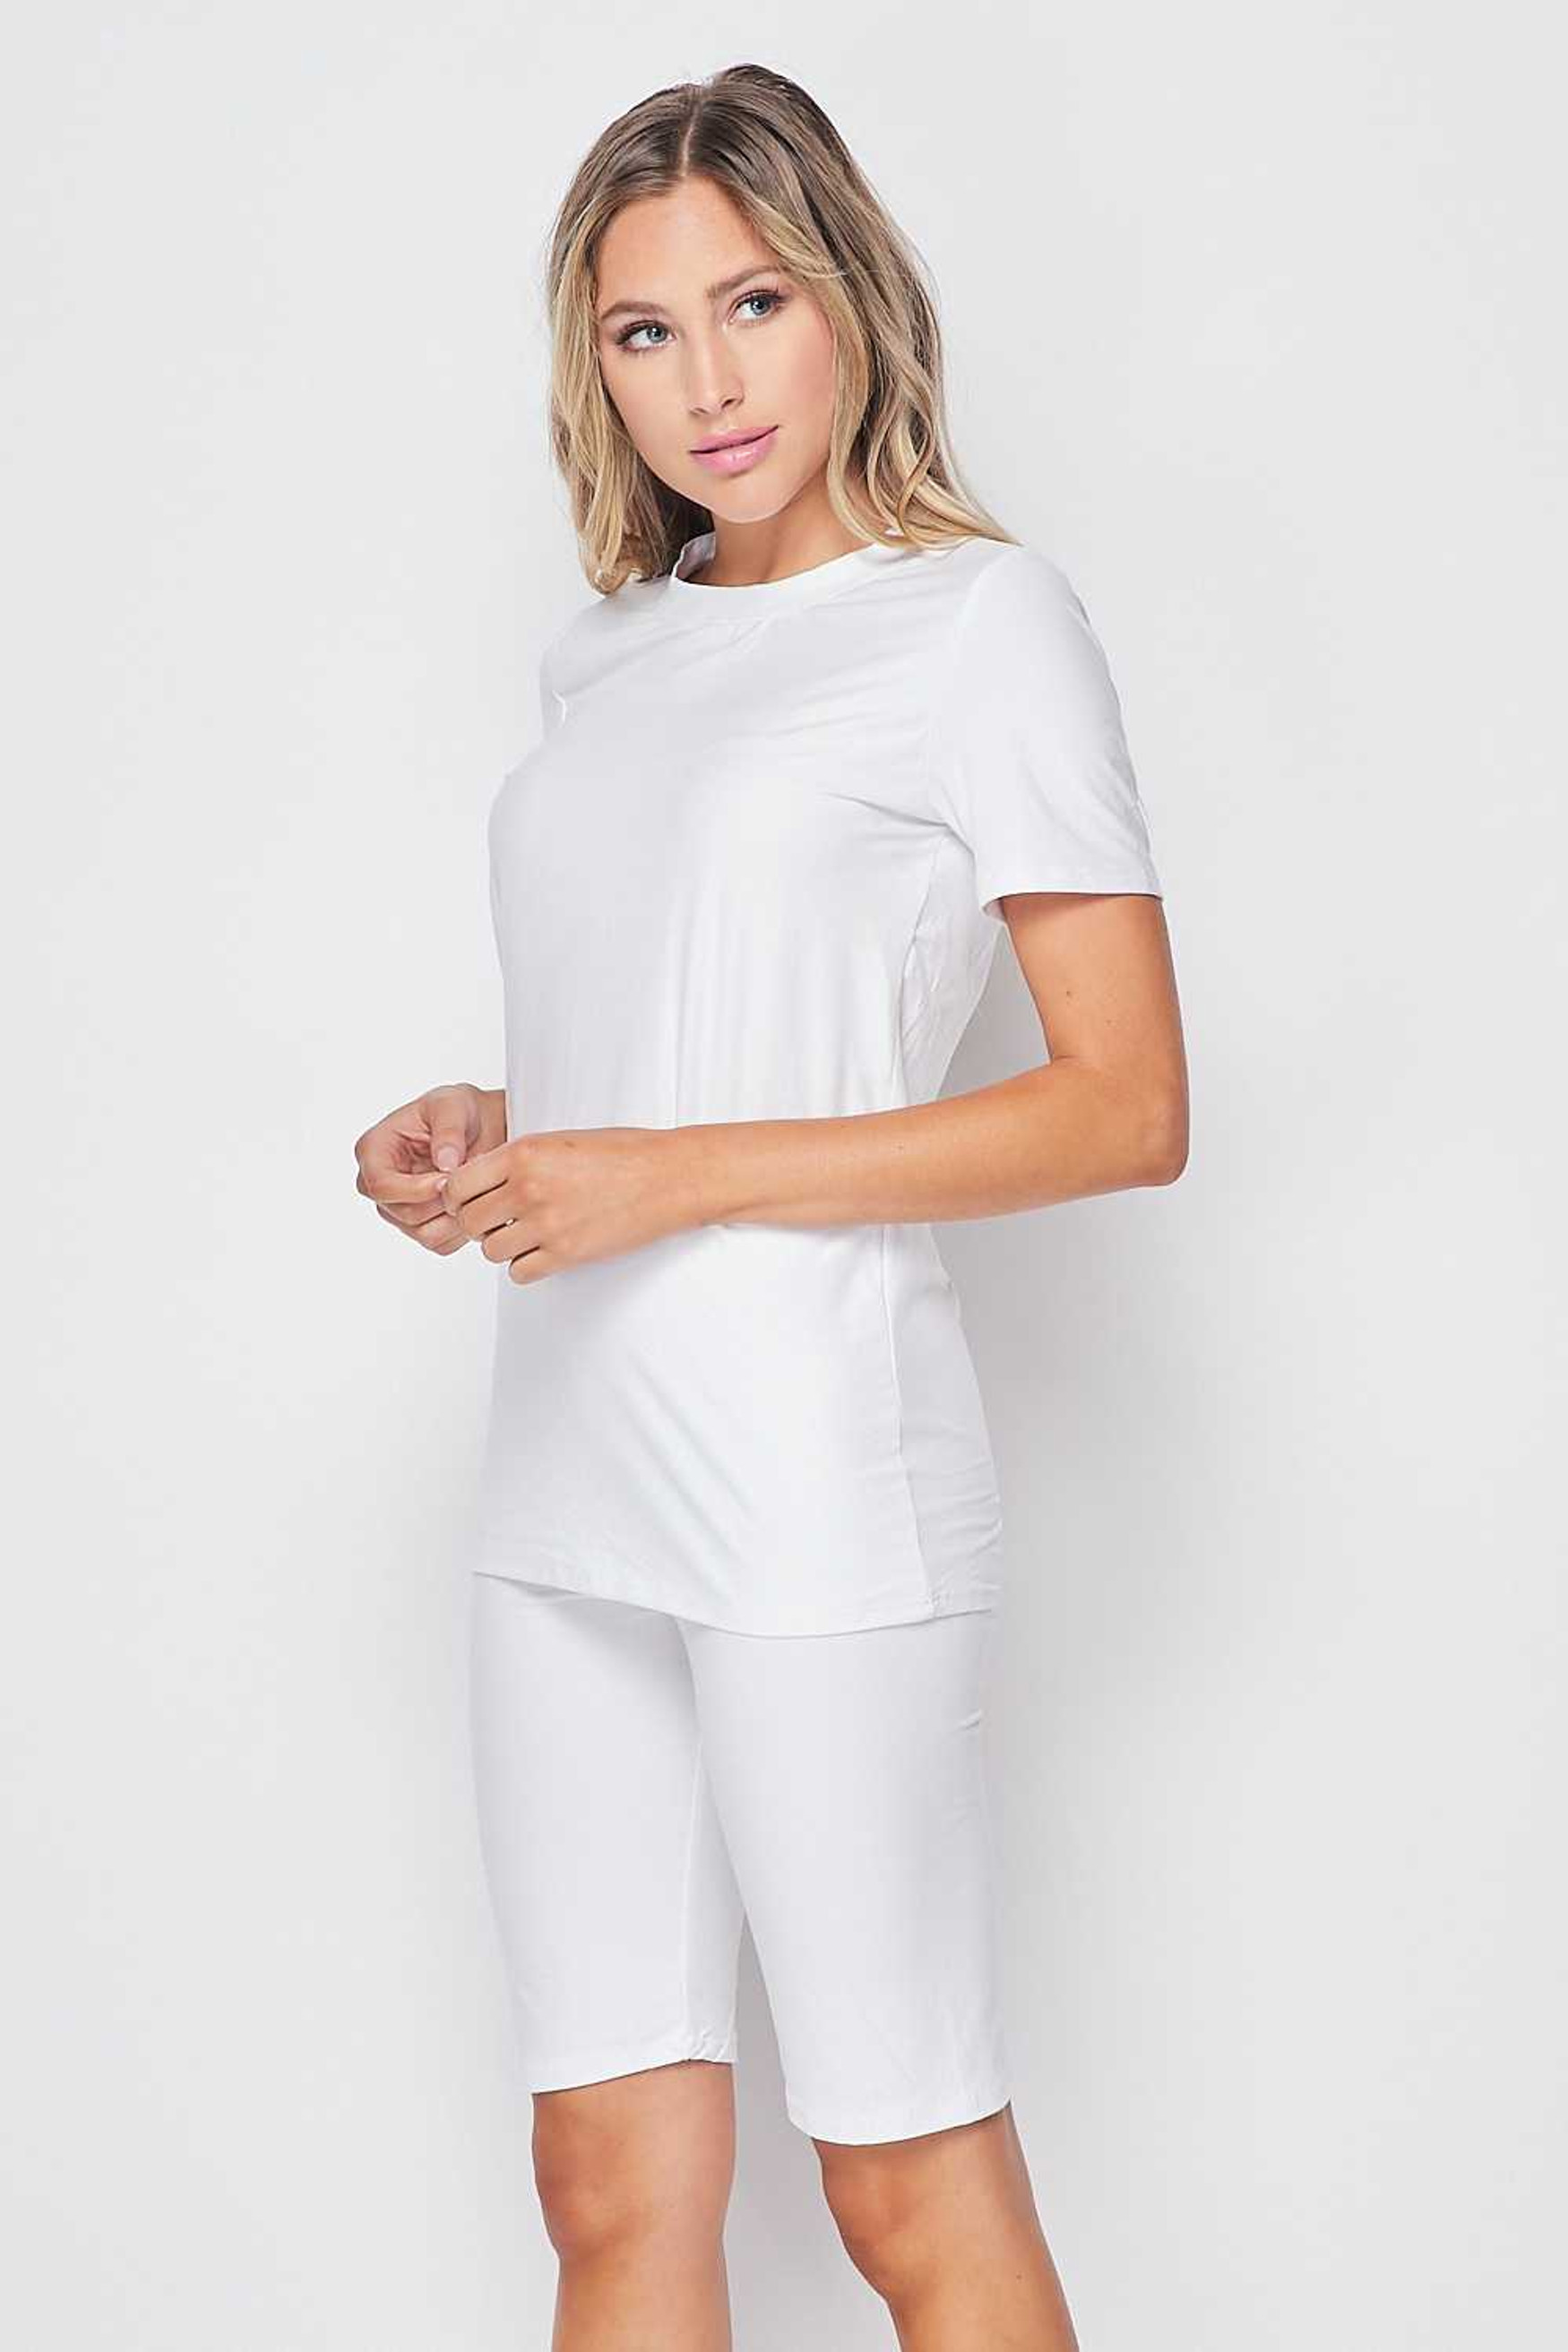 Left side of White Buttery Soft Basic Solid Biker Shorts and T-Shirt Set